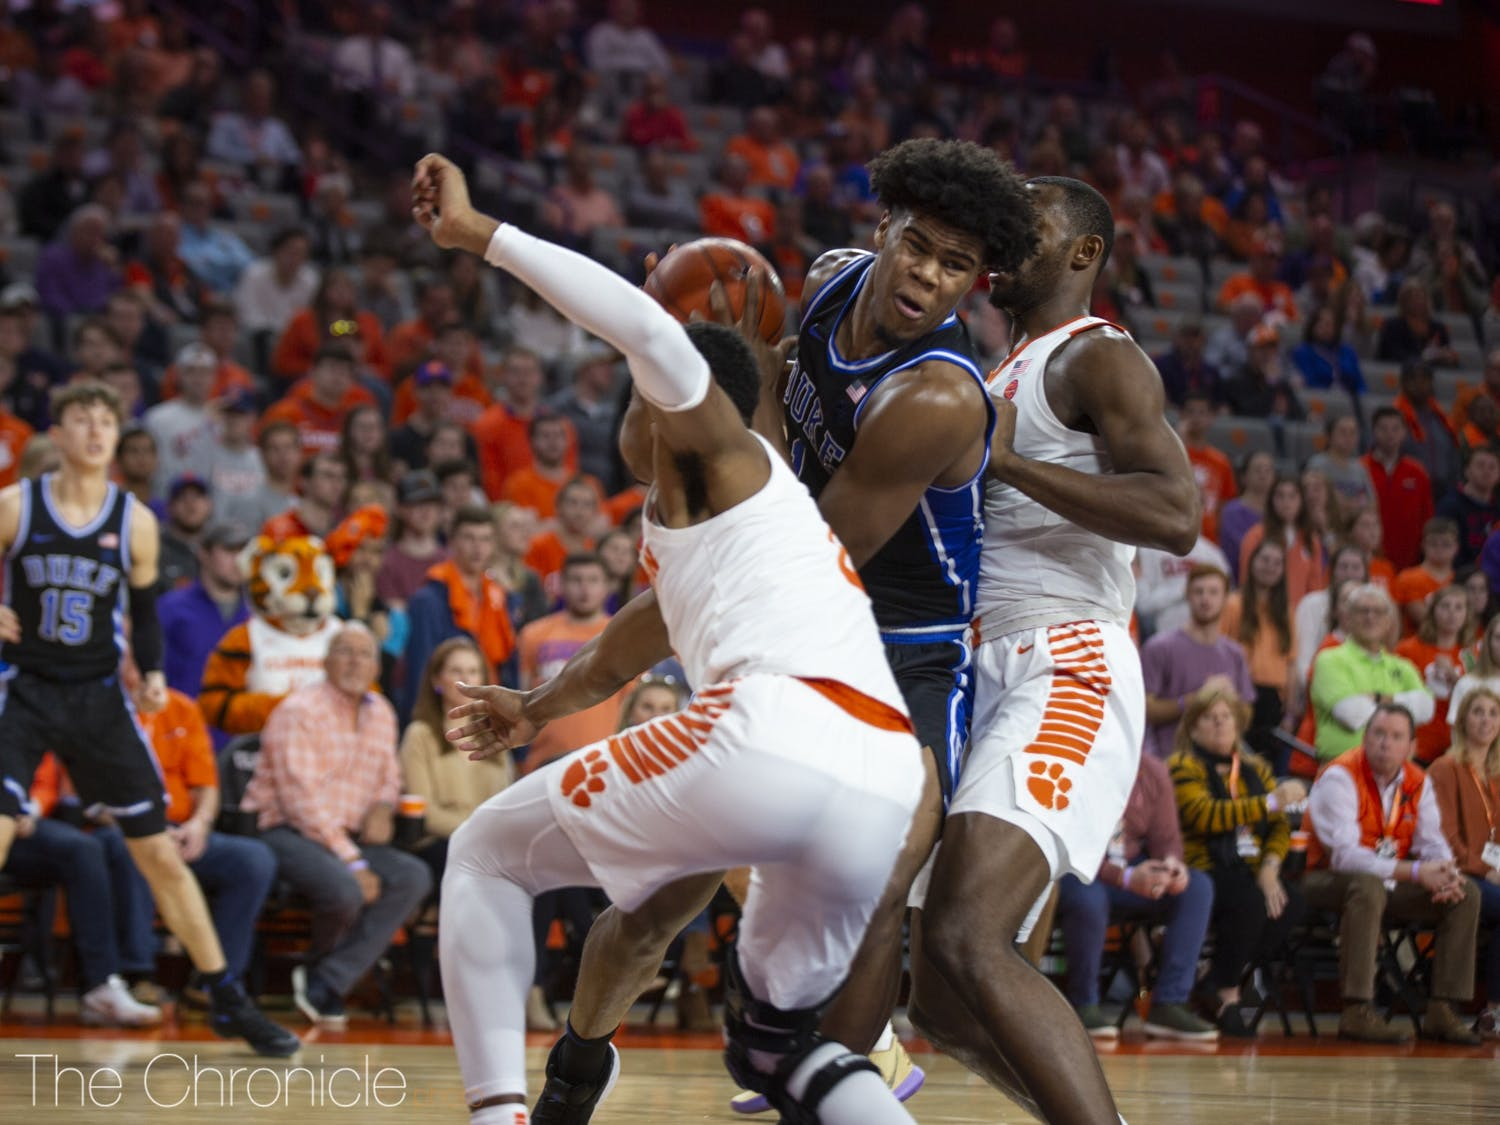 Vernon Carey Jr. picked up four fouls against Clemson, forcing him to play more cautiously than usual.